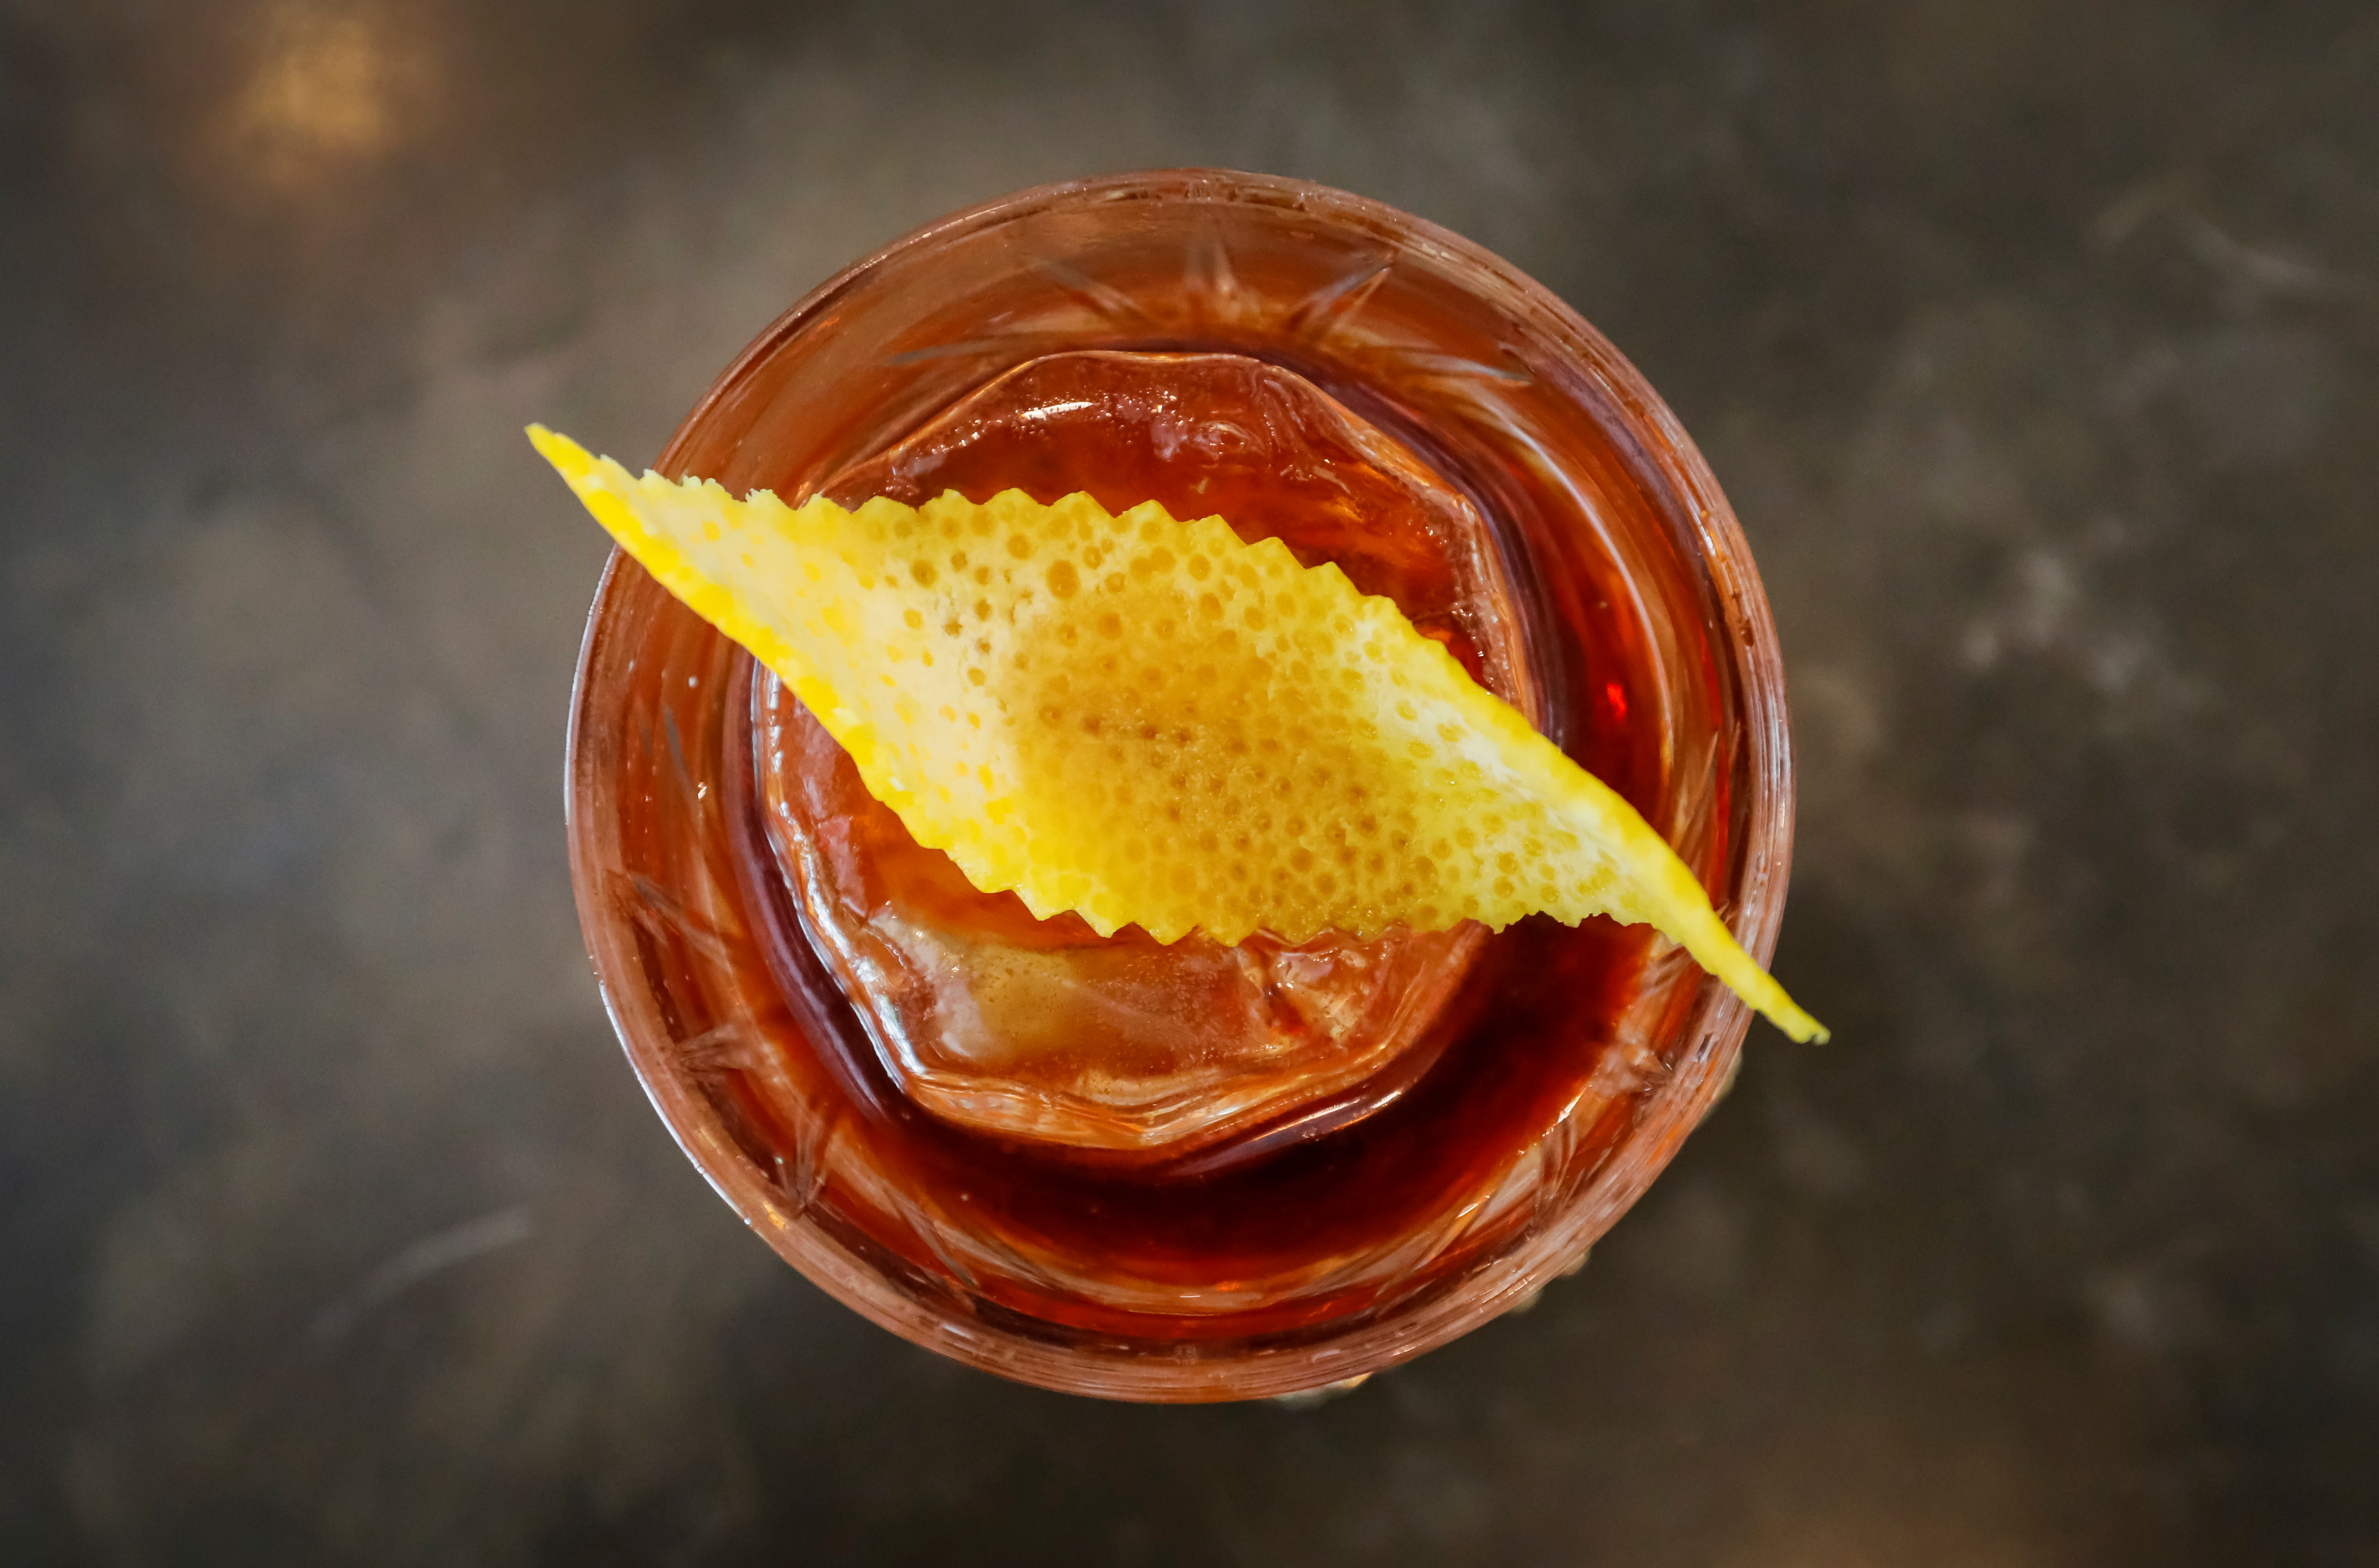 Prohibition's speakeasies and moonshine gave us the modern cocktail